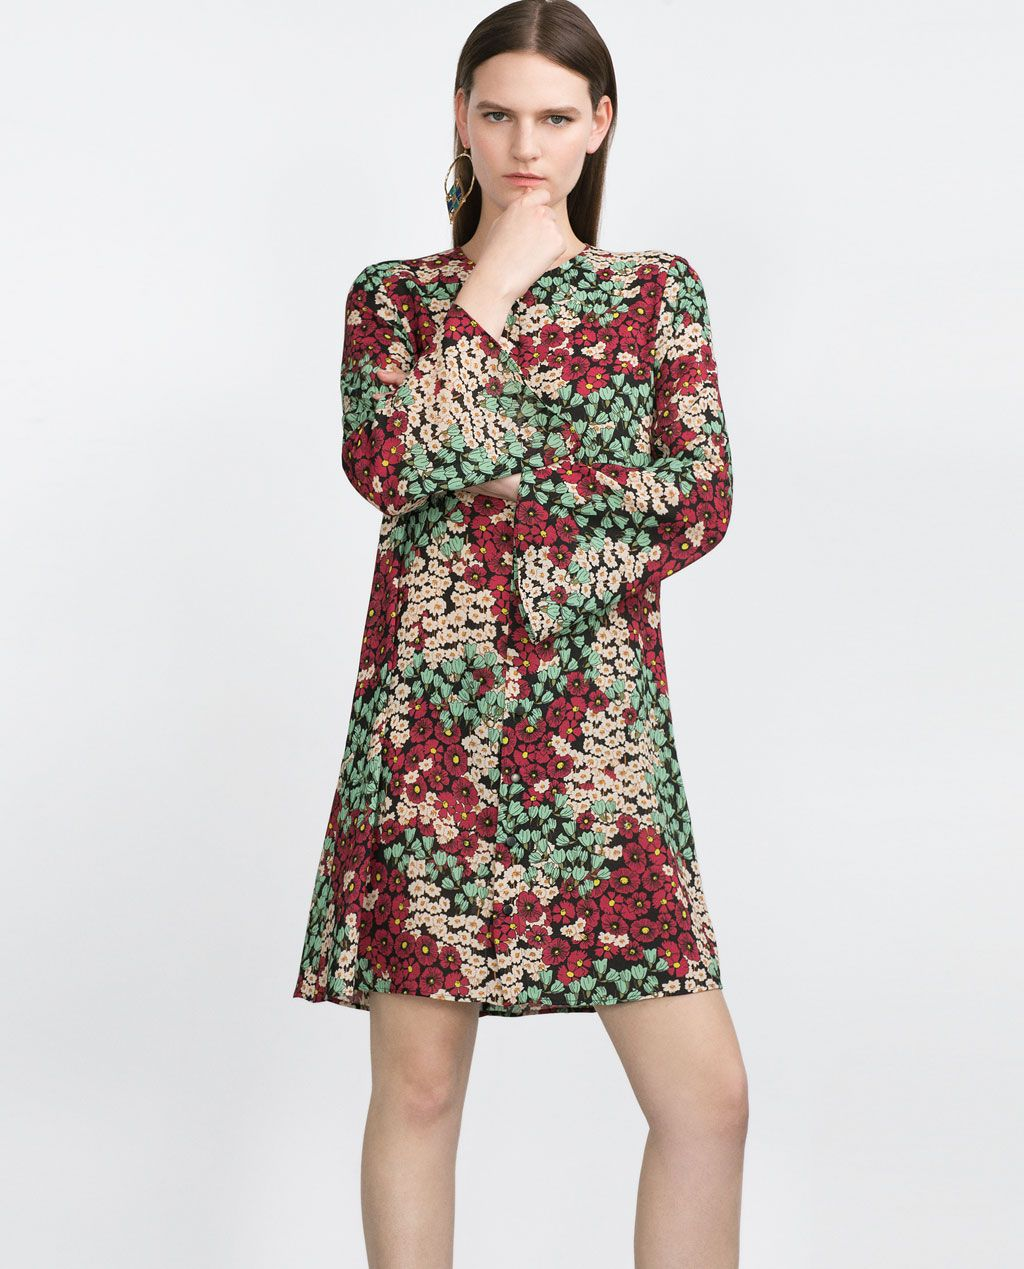 Image 2 of floral dress from zara womens dresses